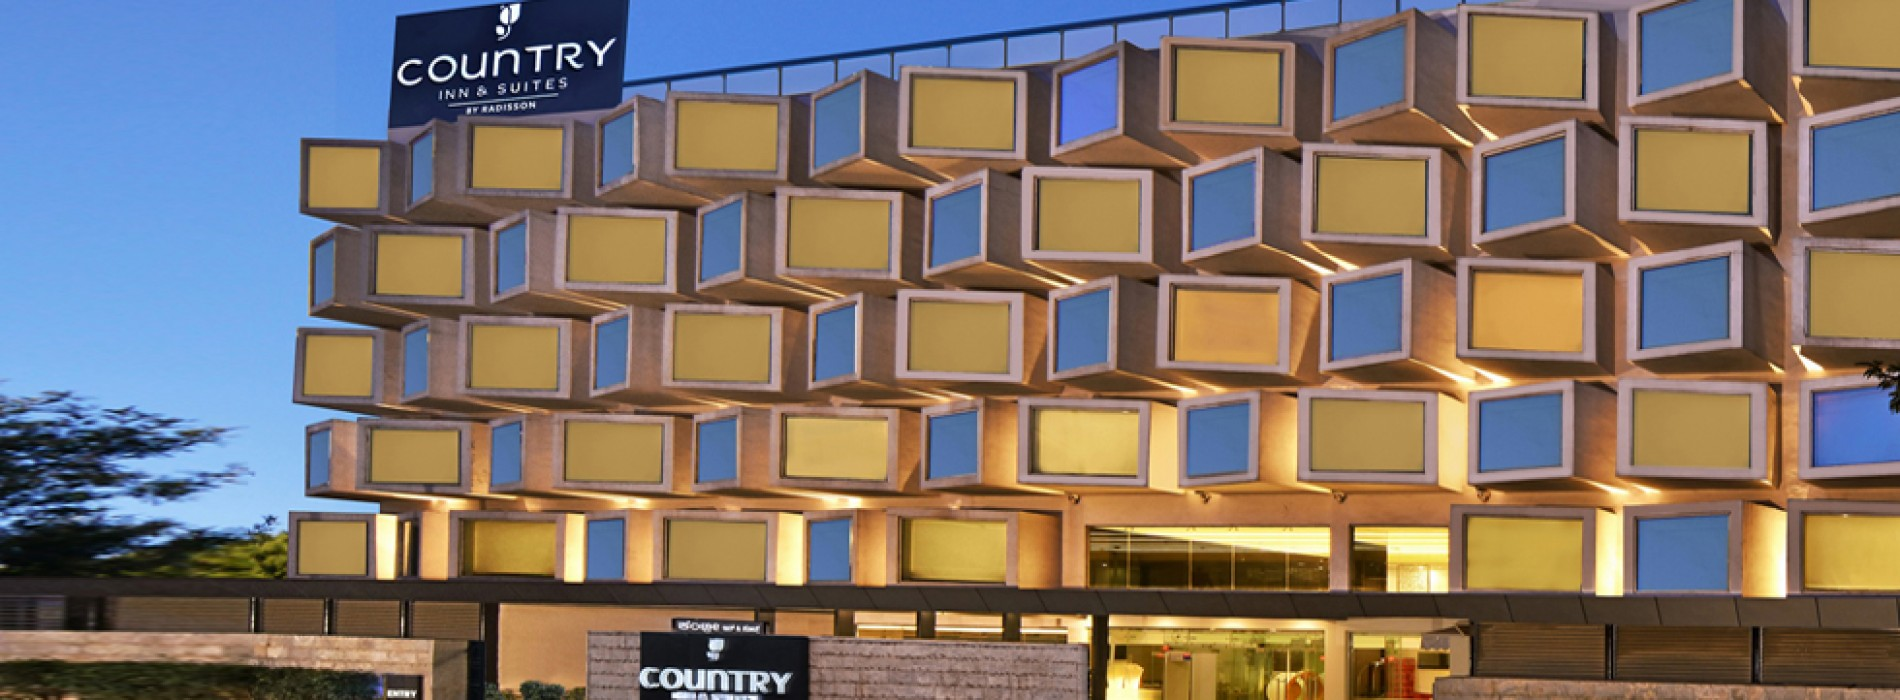 Country Inns & Suites By Carlson® announces name change to Country Inn & Suites® by Radisson